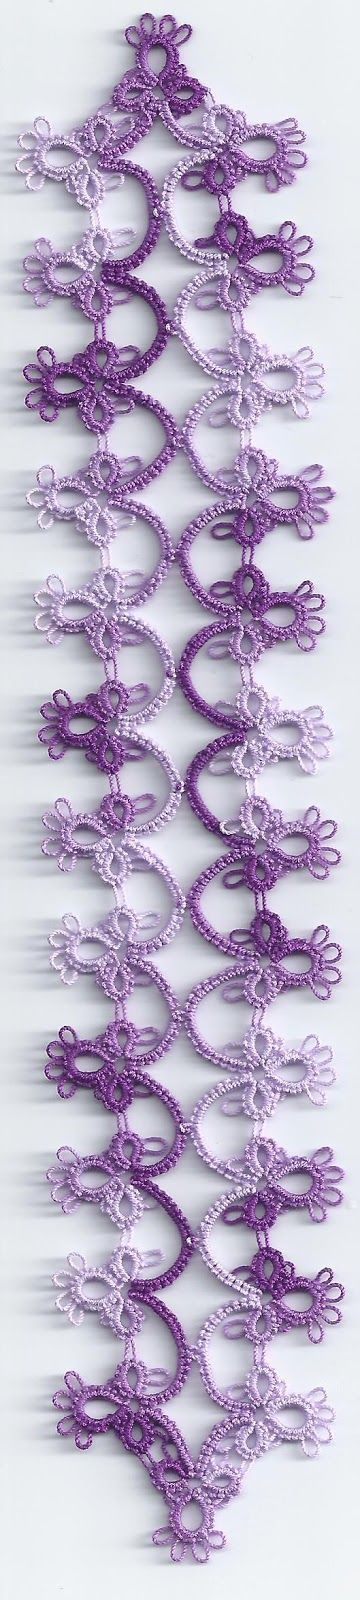 Hanky edging turned into a fancy elegant bookmark.   It's tatted in size 40 Lizbeth Purple Iris Fusion.   Oh, it's about 8 3/4 inches long.  Tatting Lace in Grace.